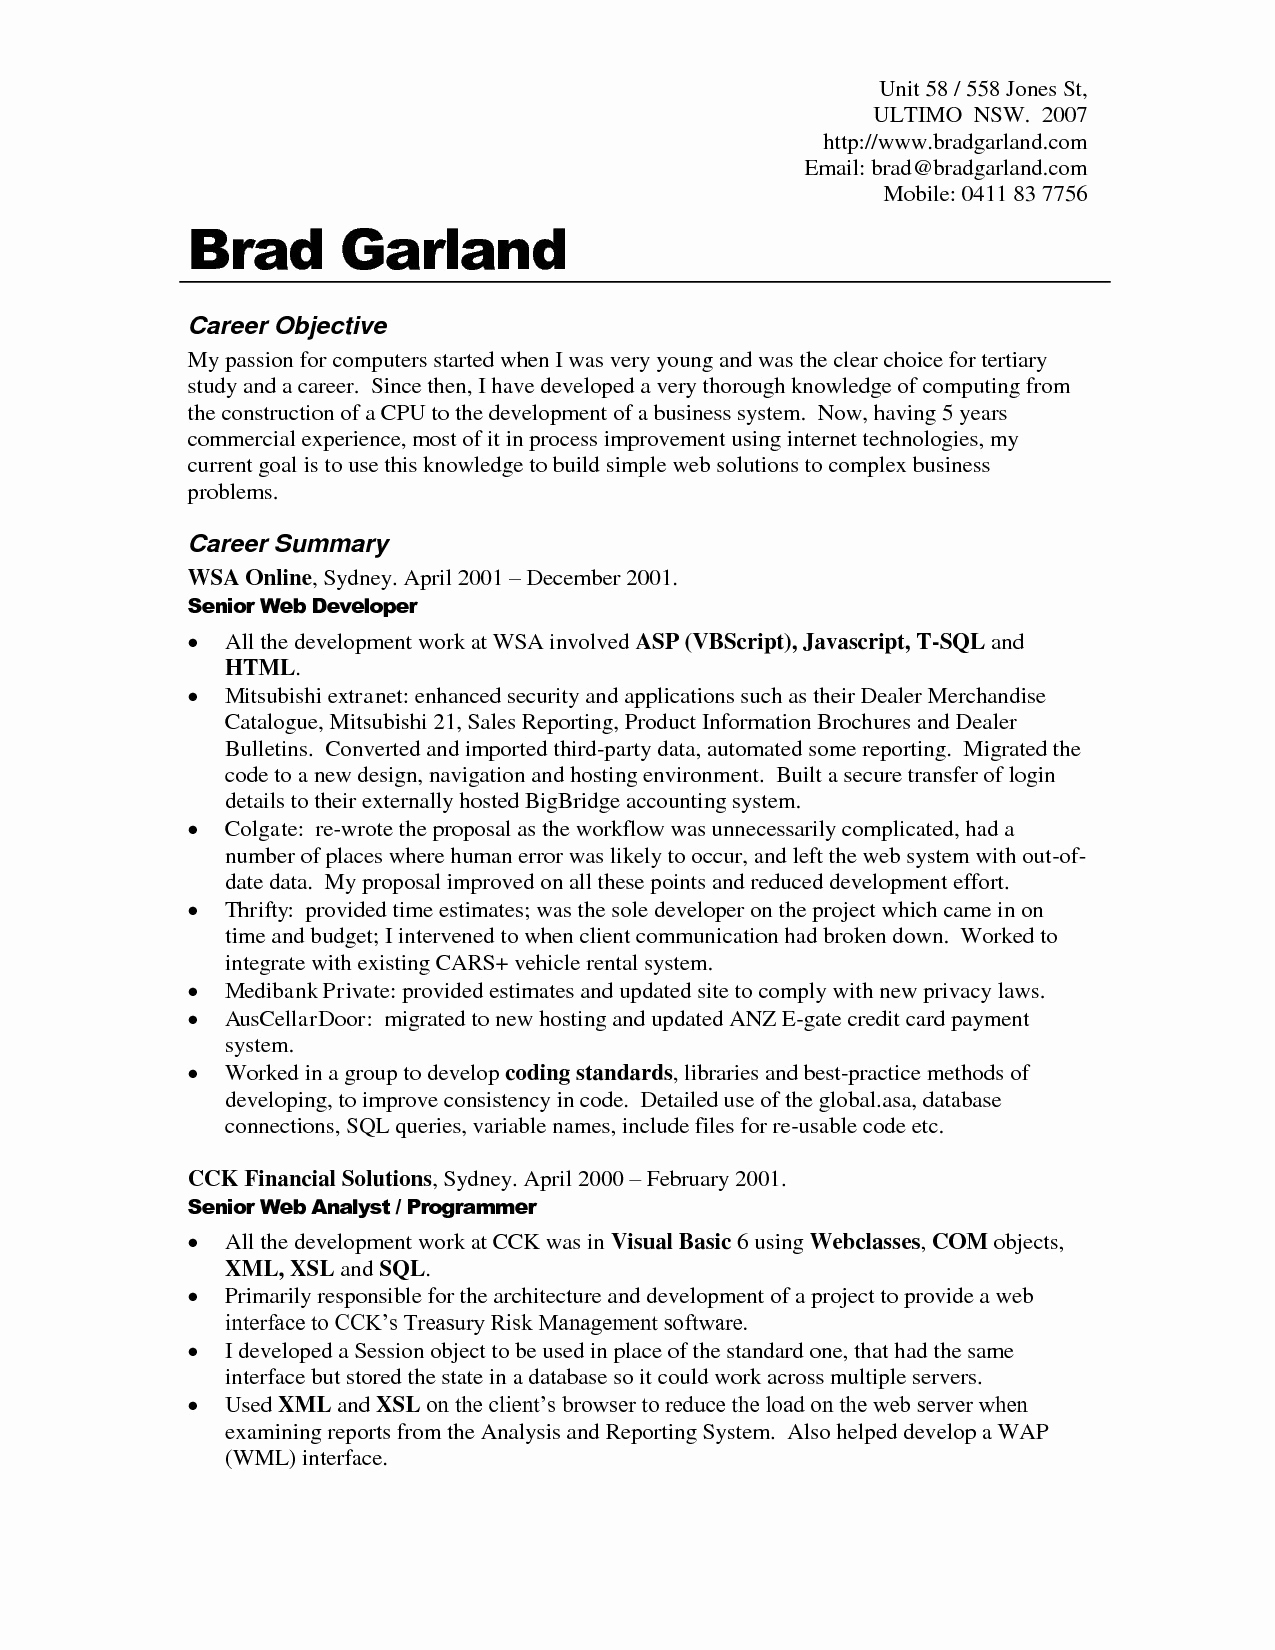 Cover Letter Template for Teenager - 20 Cover Letter for Teenager